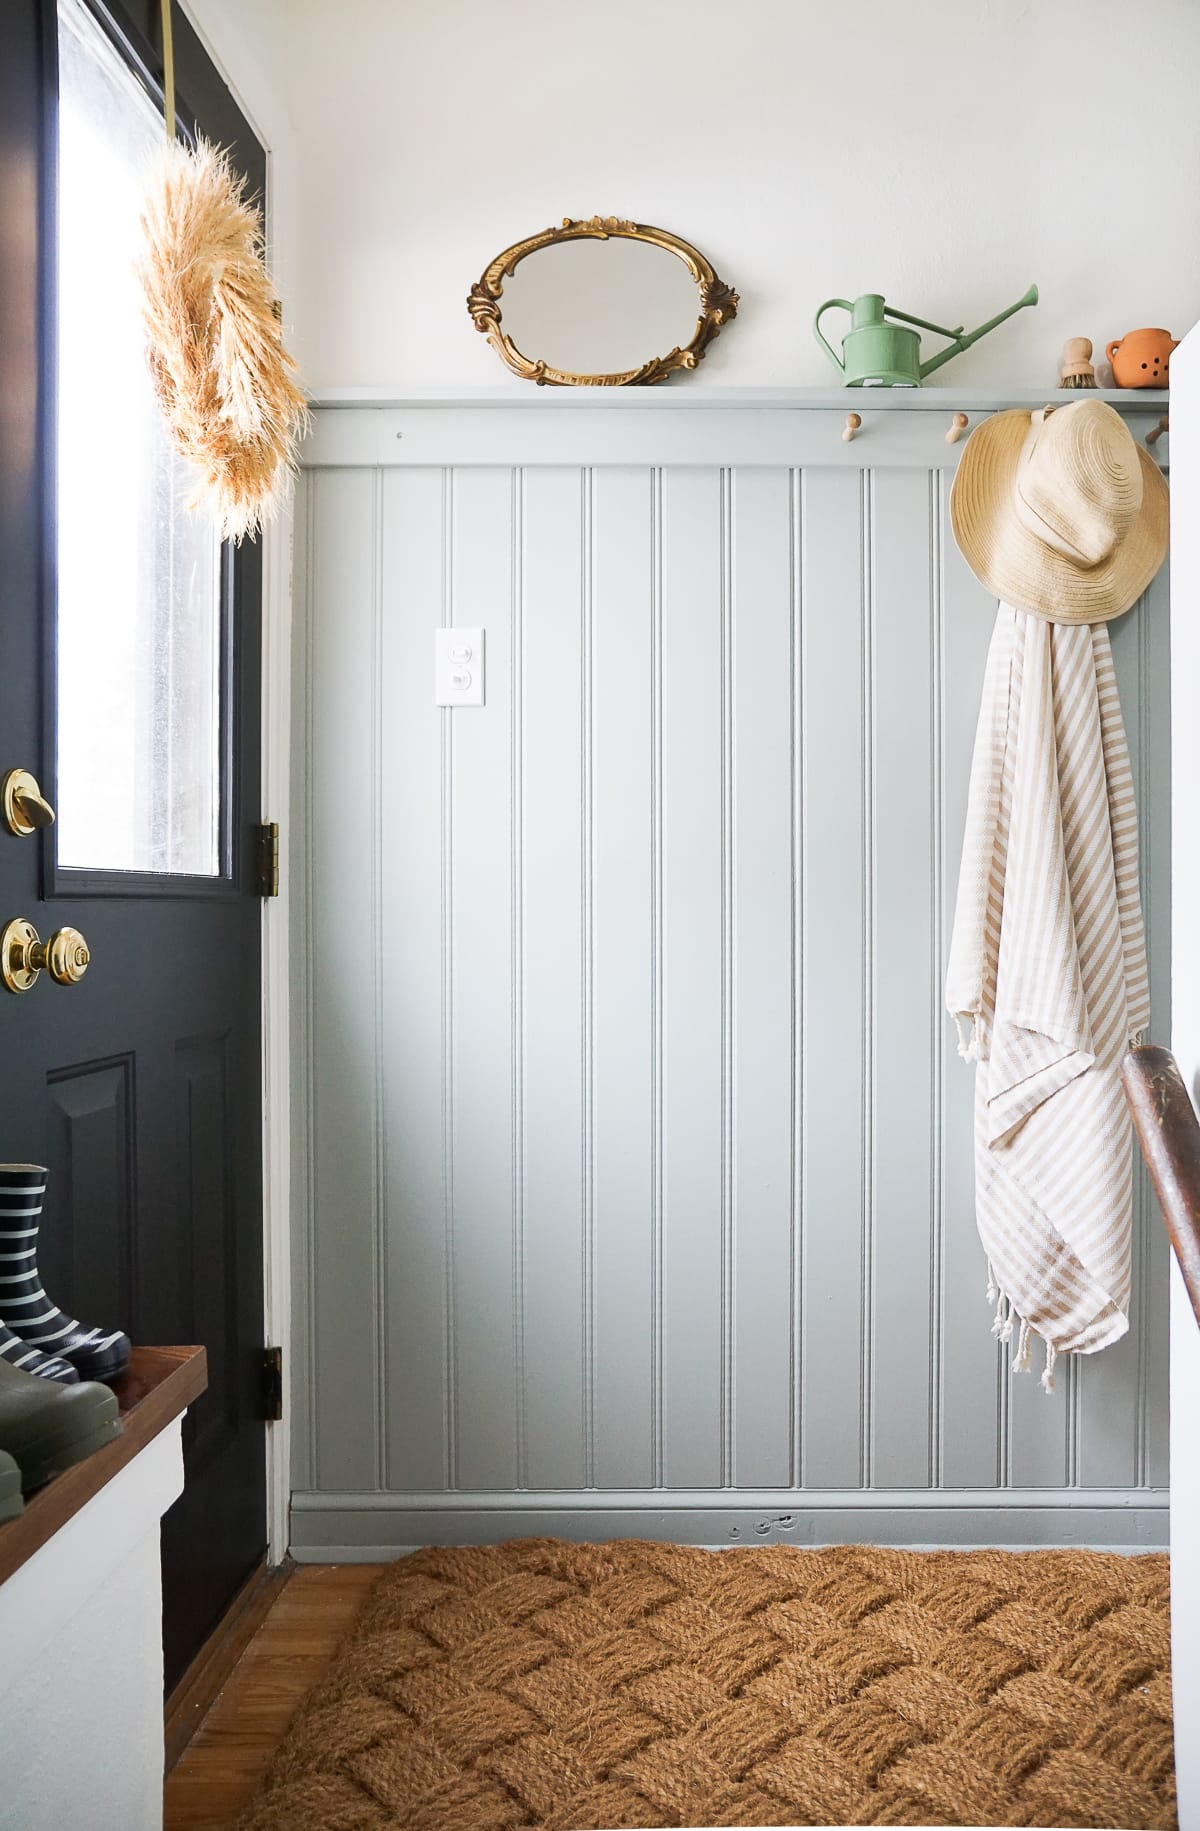 Tips to create an organized entryway